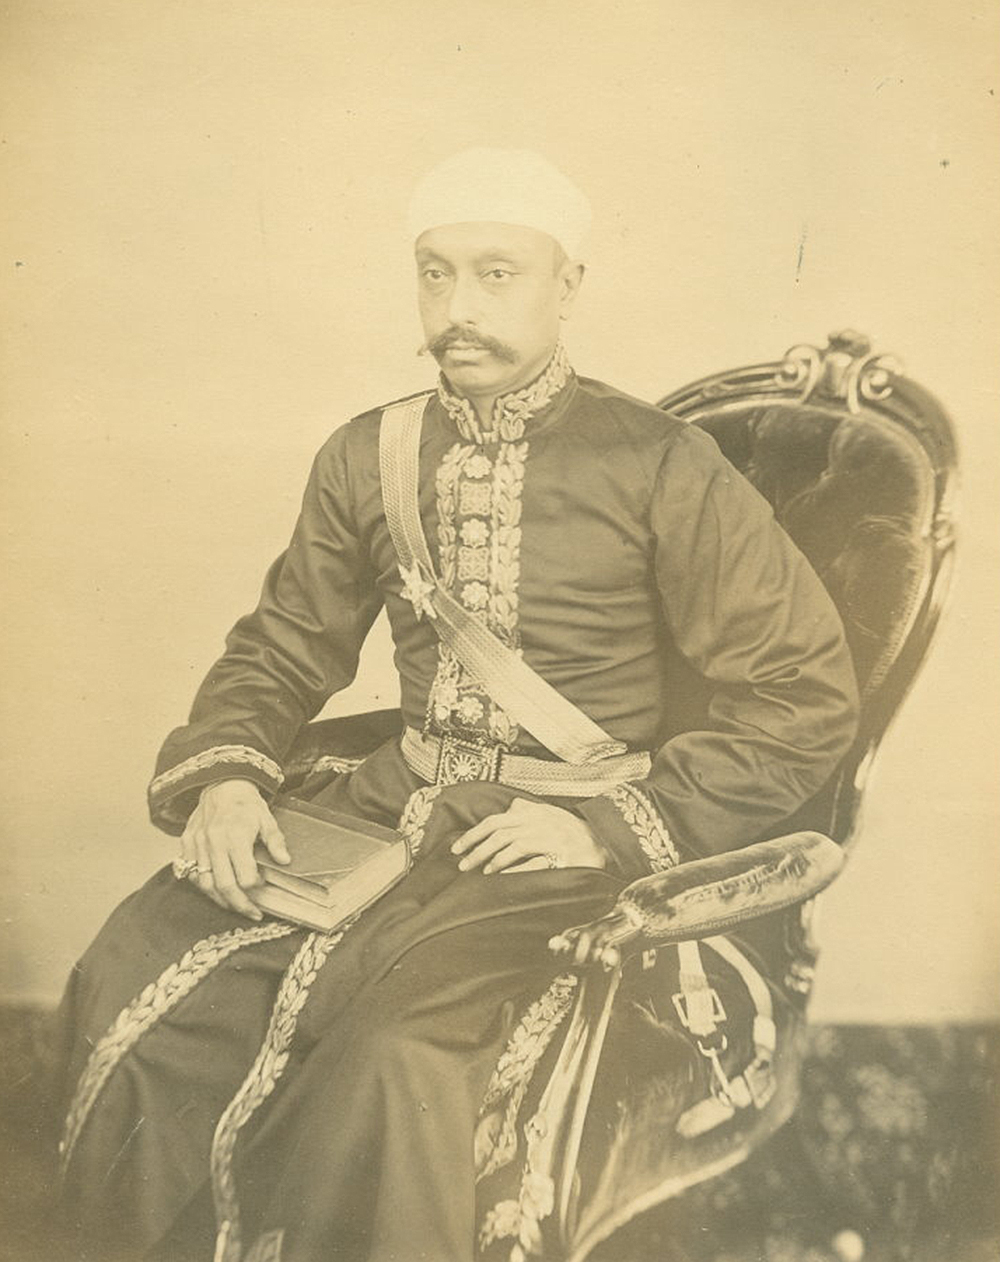 Photograph of Sir Salar Jung. Wikimedia Commons.